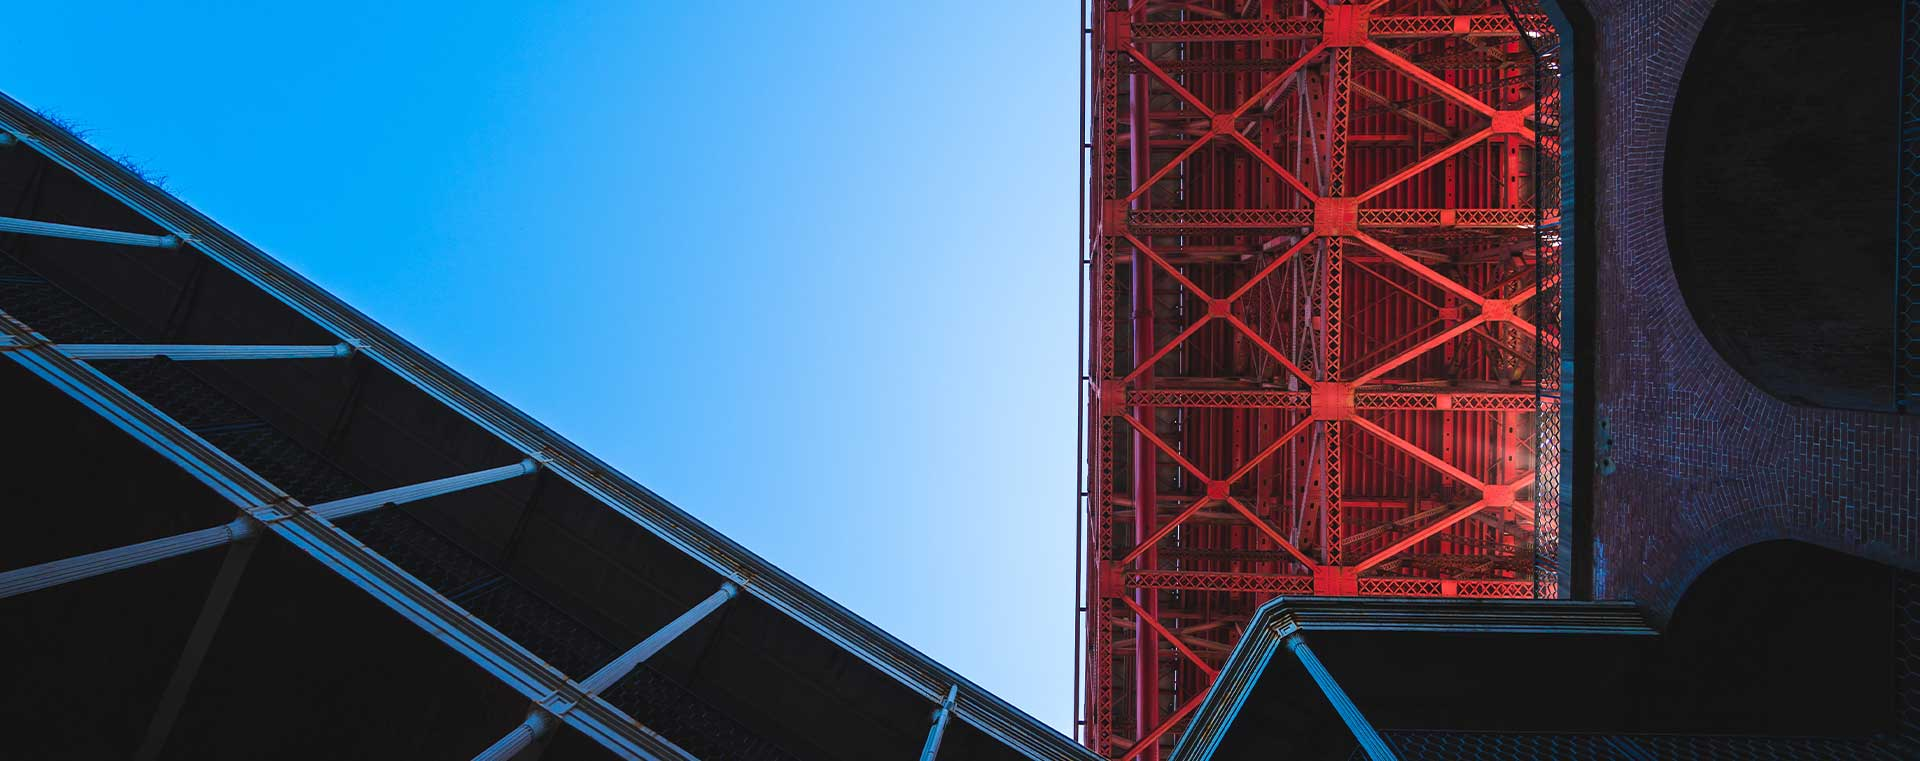 bottom-red-bridge-blue-sky